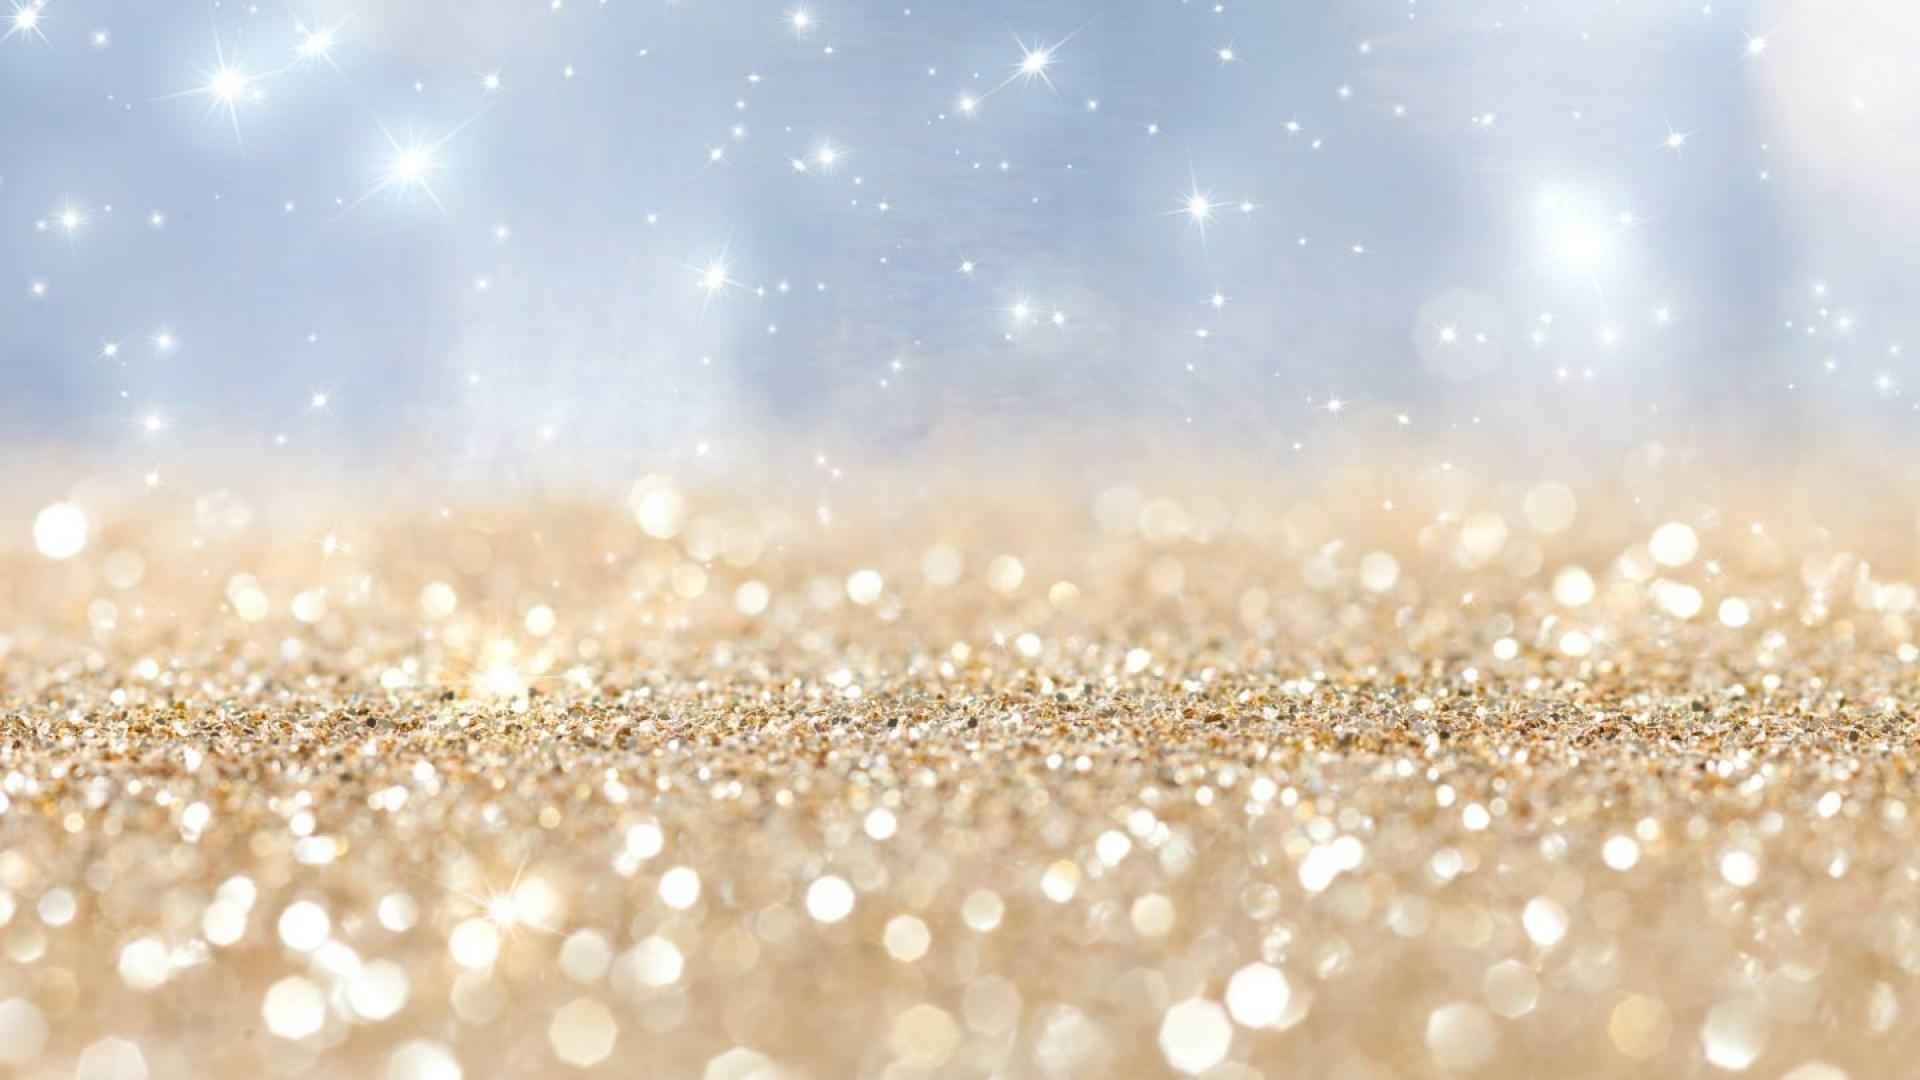 Gold and White Glitter Background